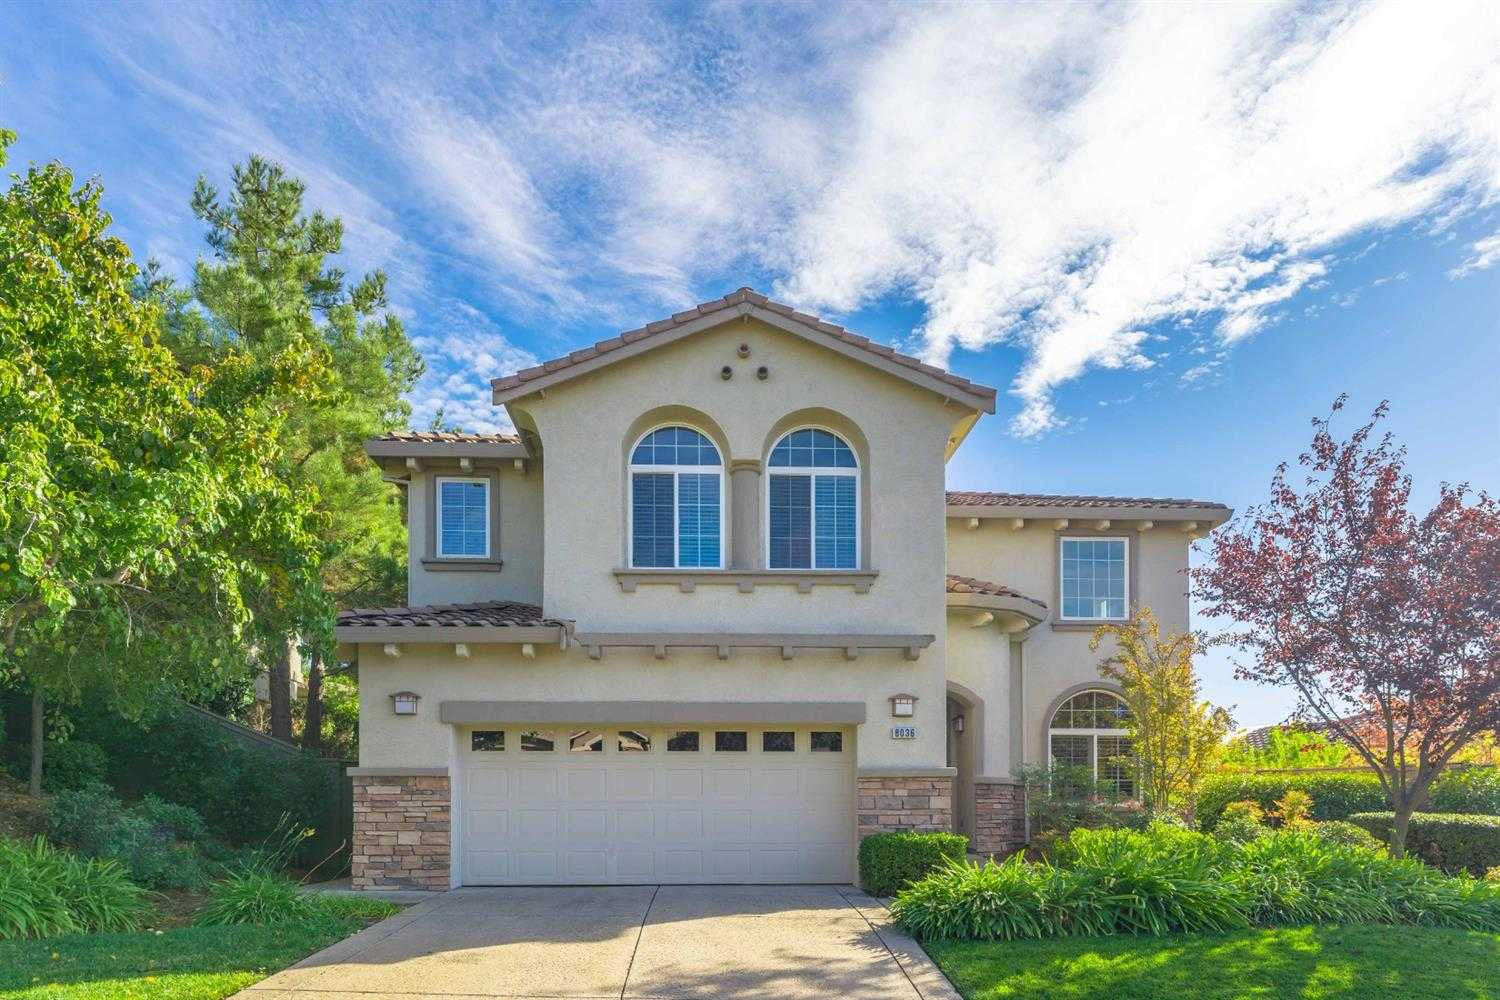 $624,000 - 4Br/3Ba -  for Sale in El Dorado Hills